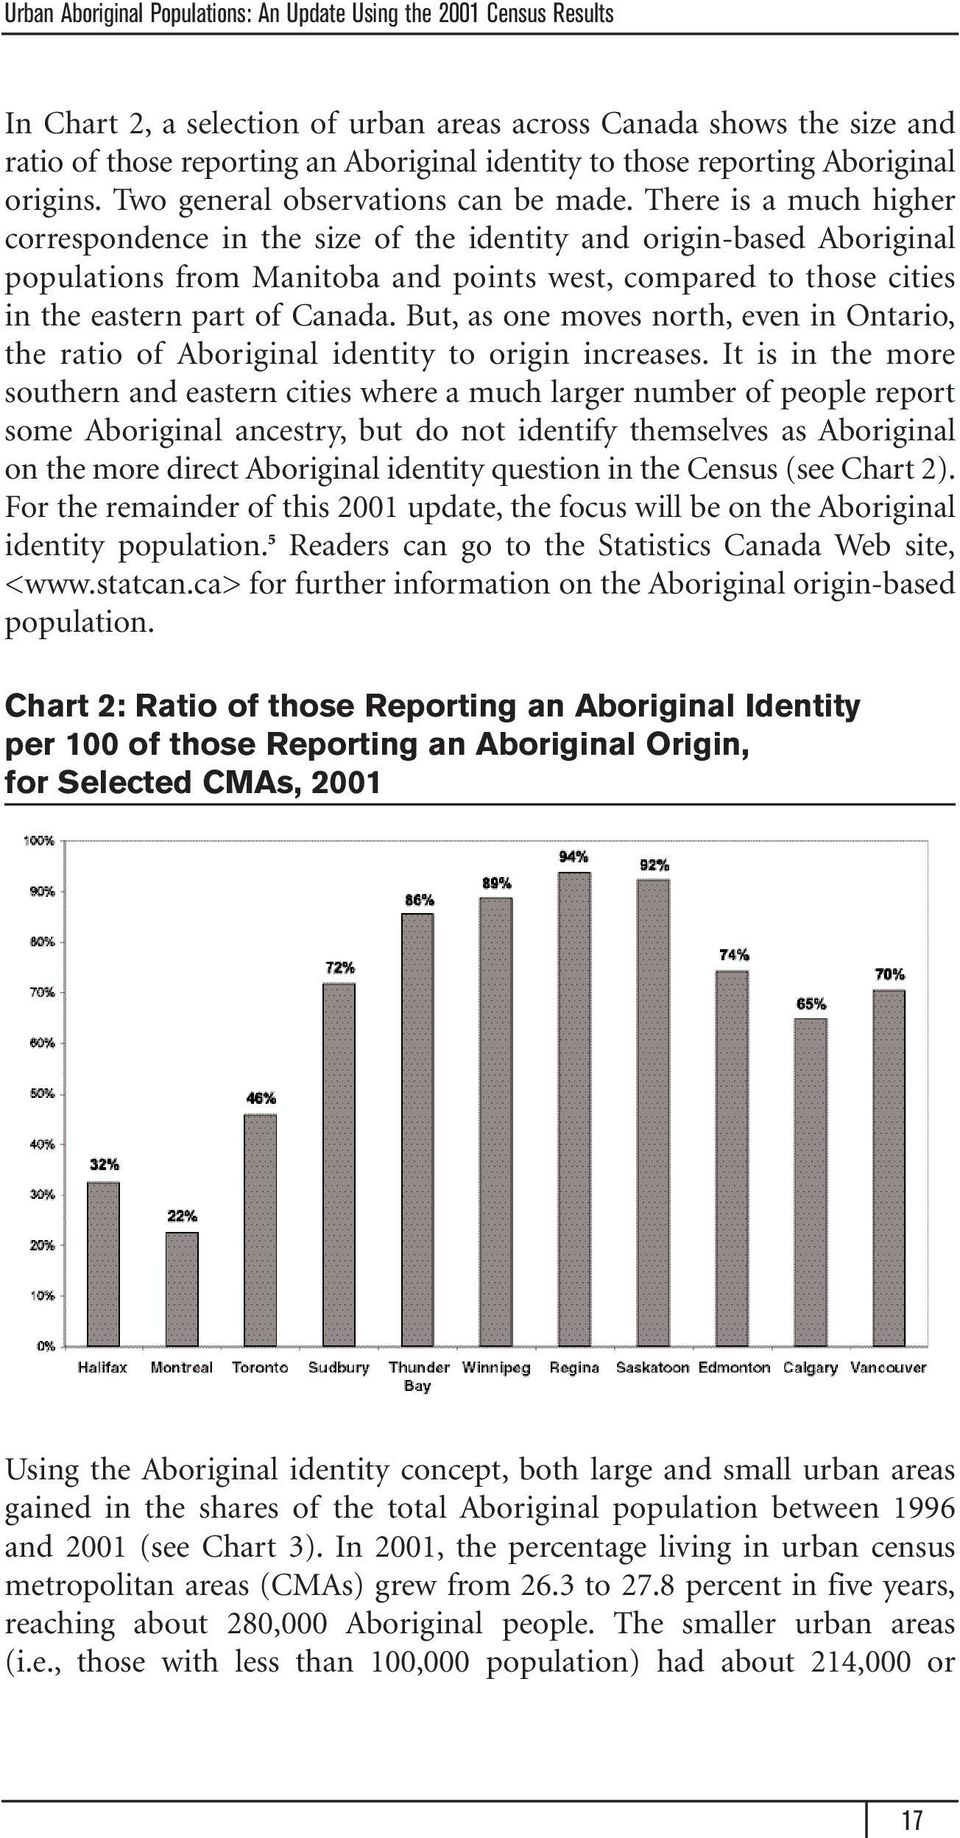 There is a much higher correspondence in the size of the identity and origin-based Aboriginal populations from Manitoba and points west, compared to those cities in the eastern part of Canada.